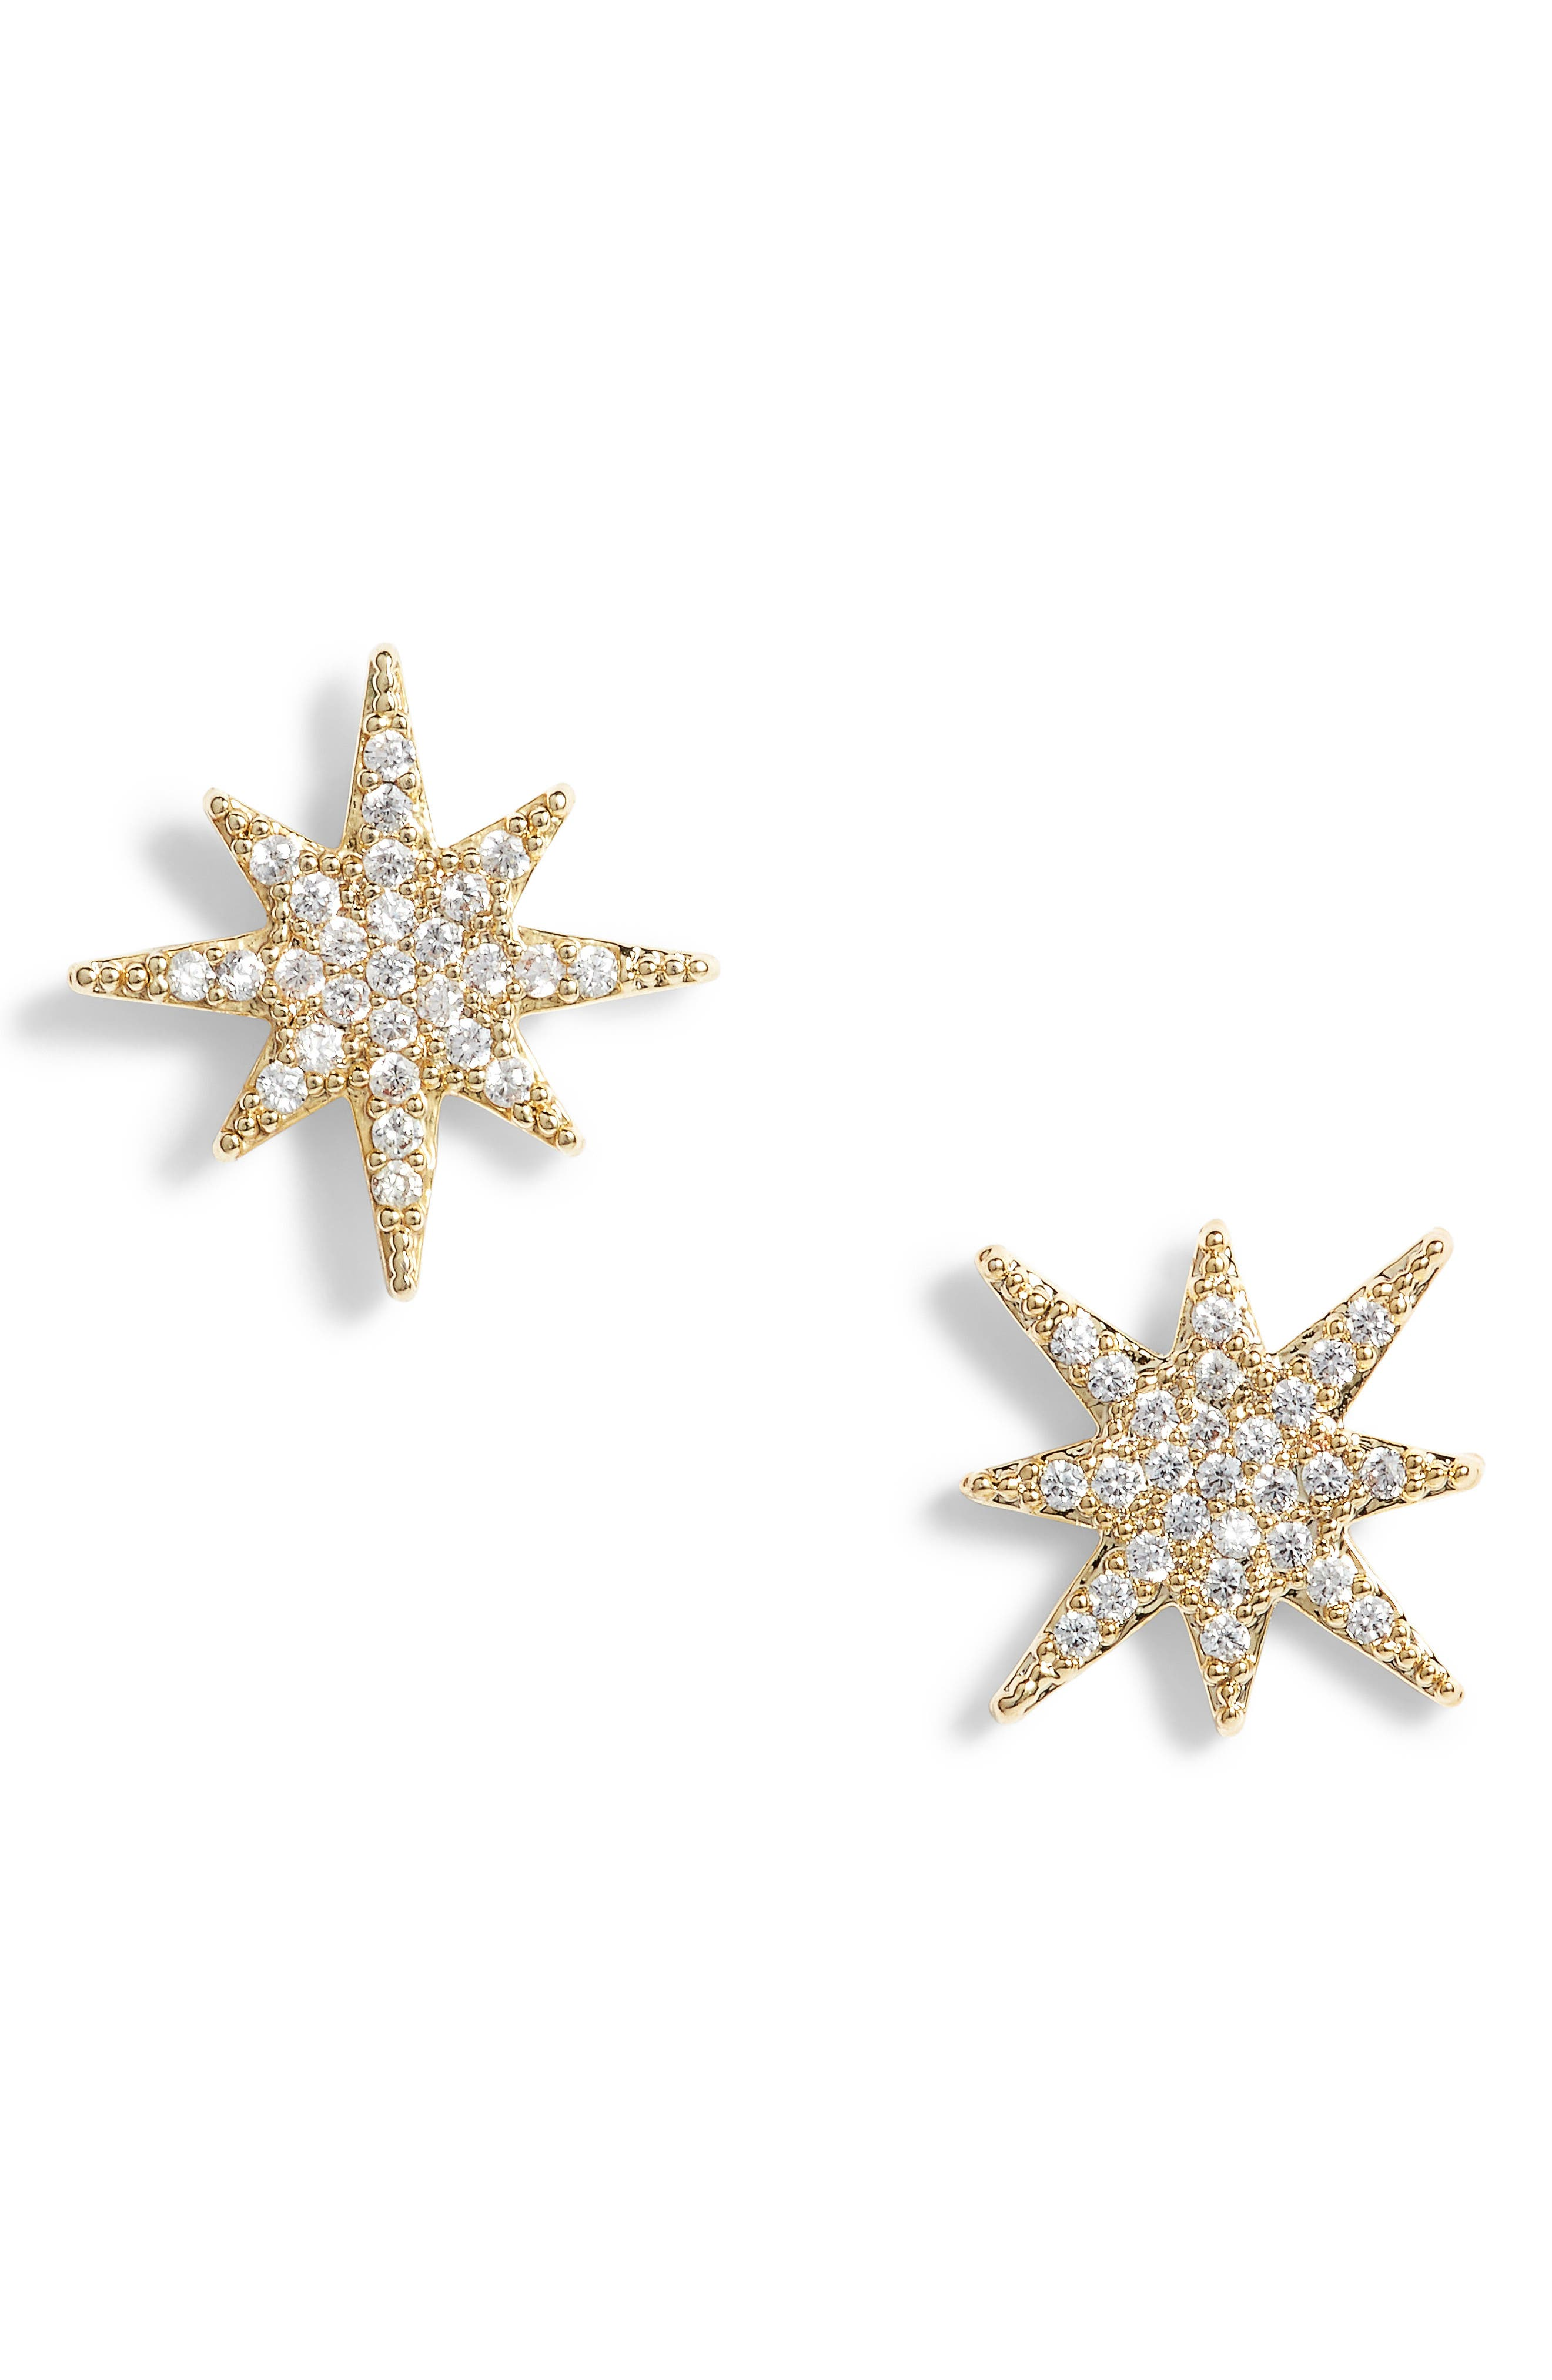 Small Starburst Crystal Earrings,                         Main,                         color, 710